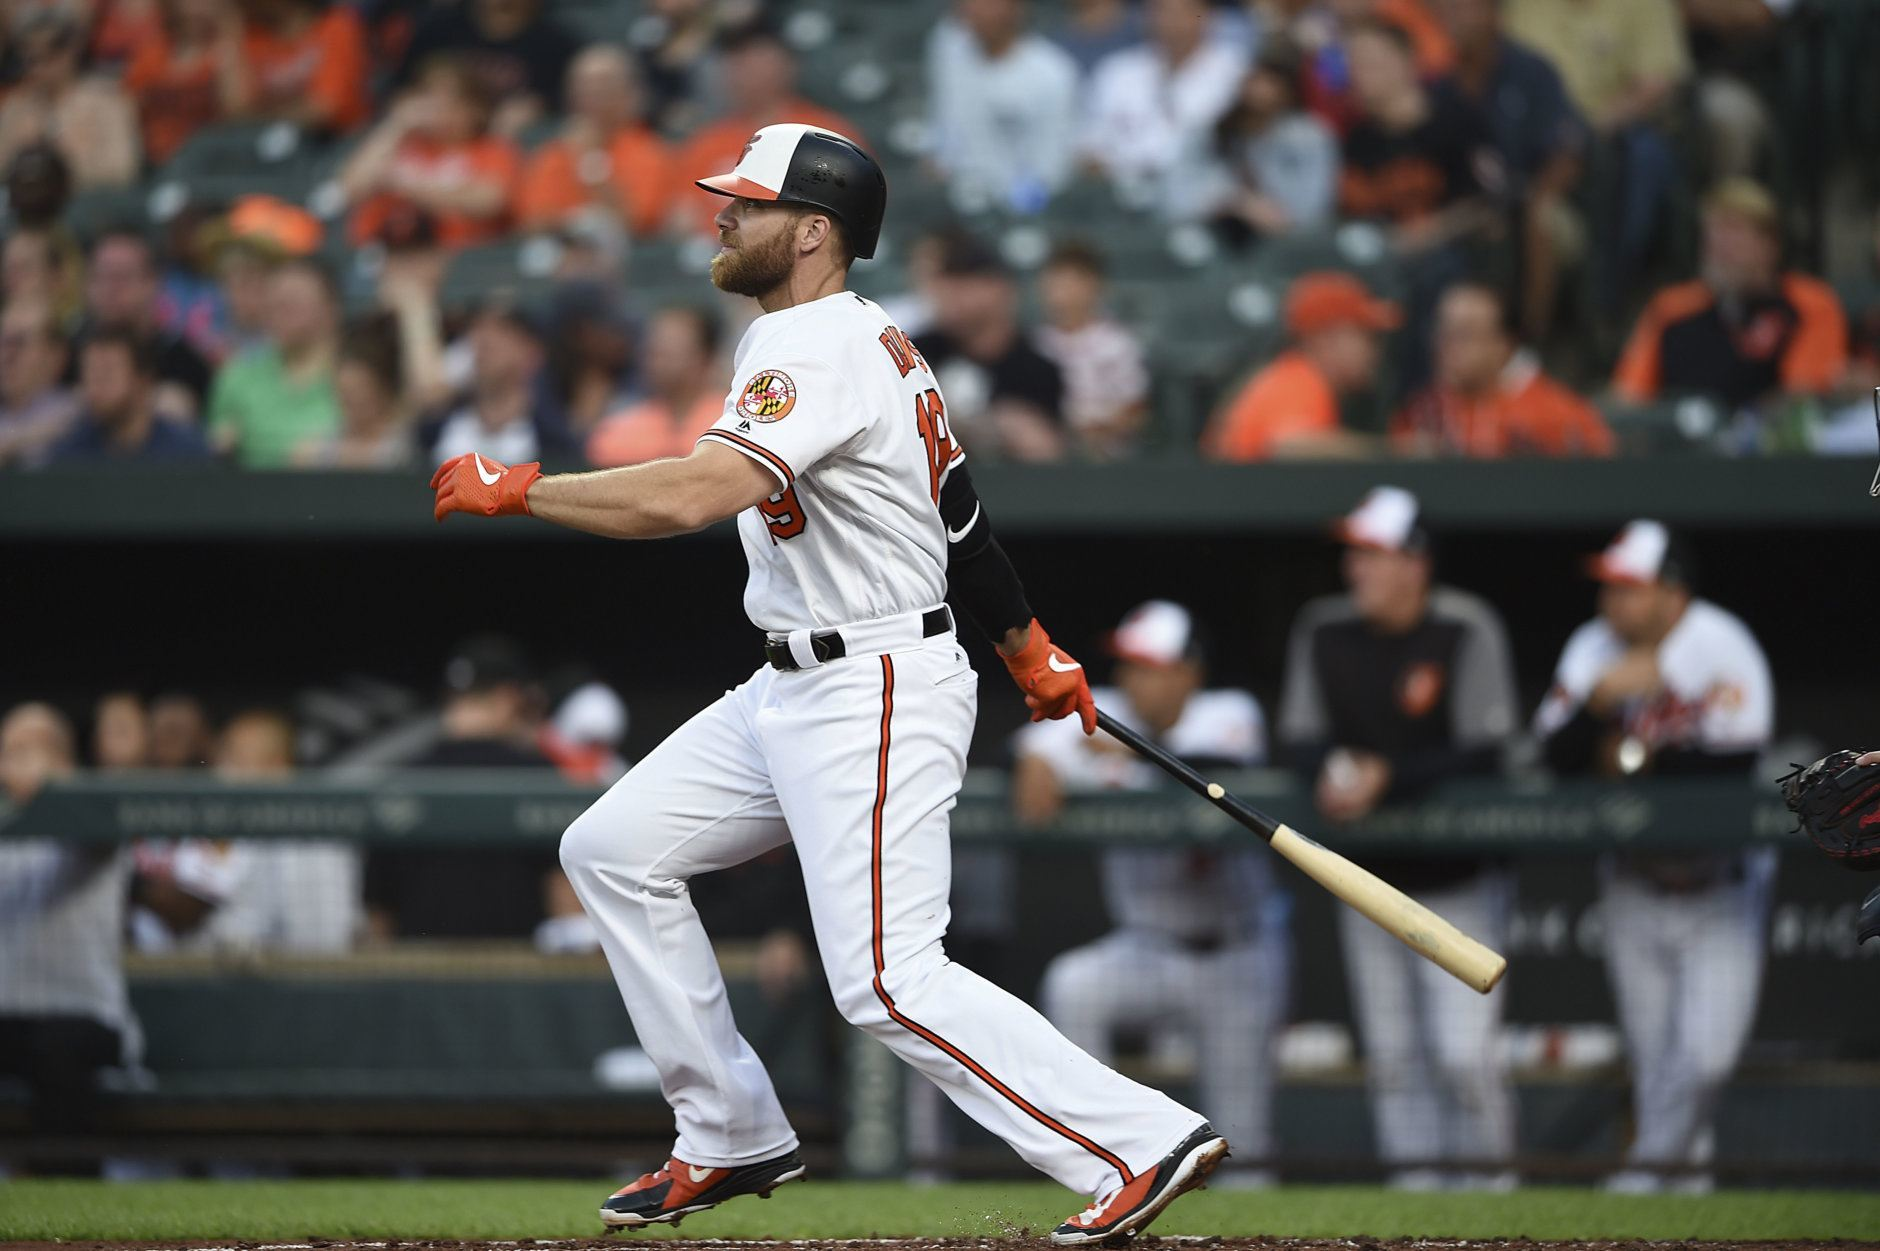 Baltimore Orioles' Chris Davis at bat against the Boston Red Sox in a baseball game, Tuesday, May 7, 2019, in Baltimore. (AP Photo/Gail Burton)